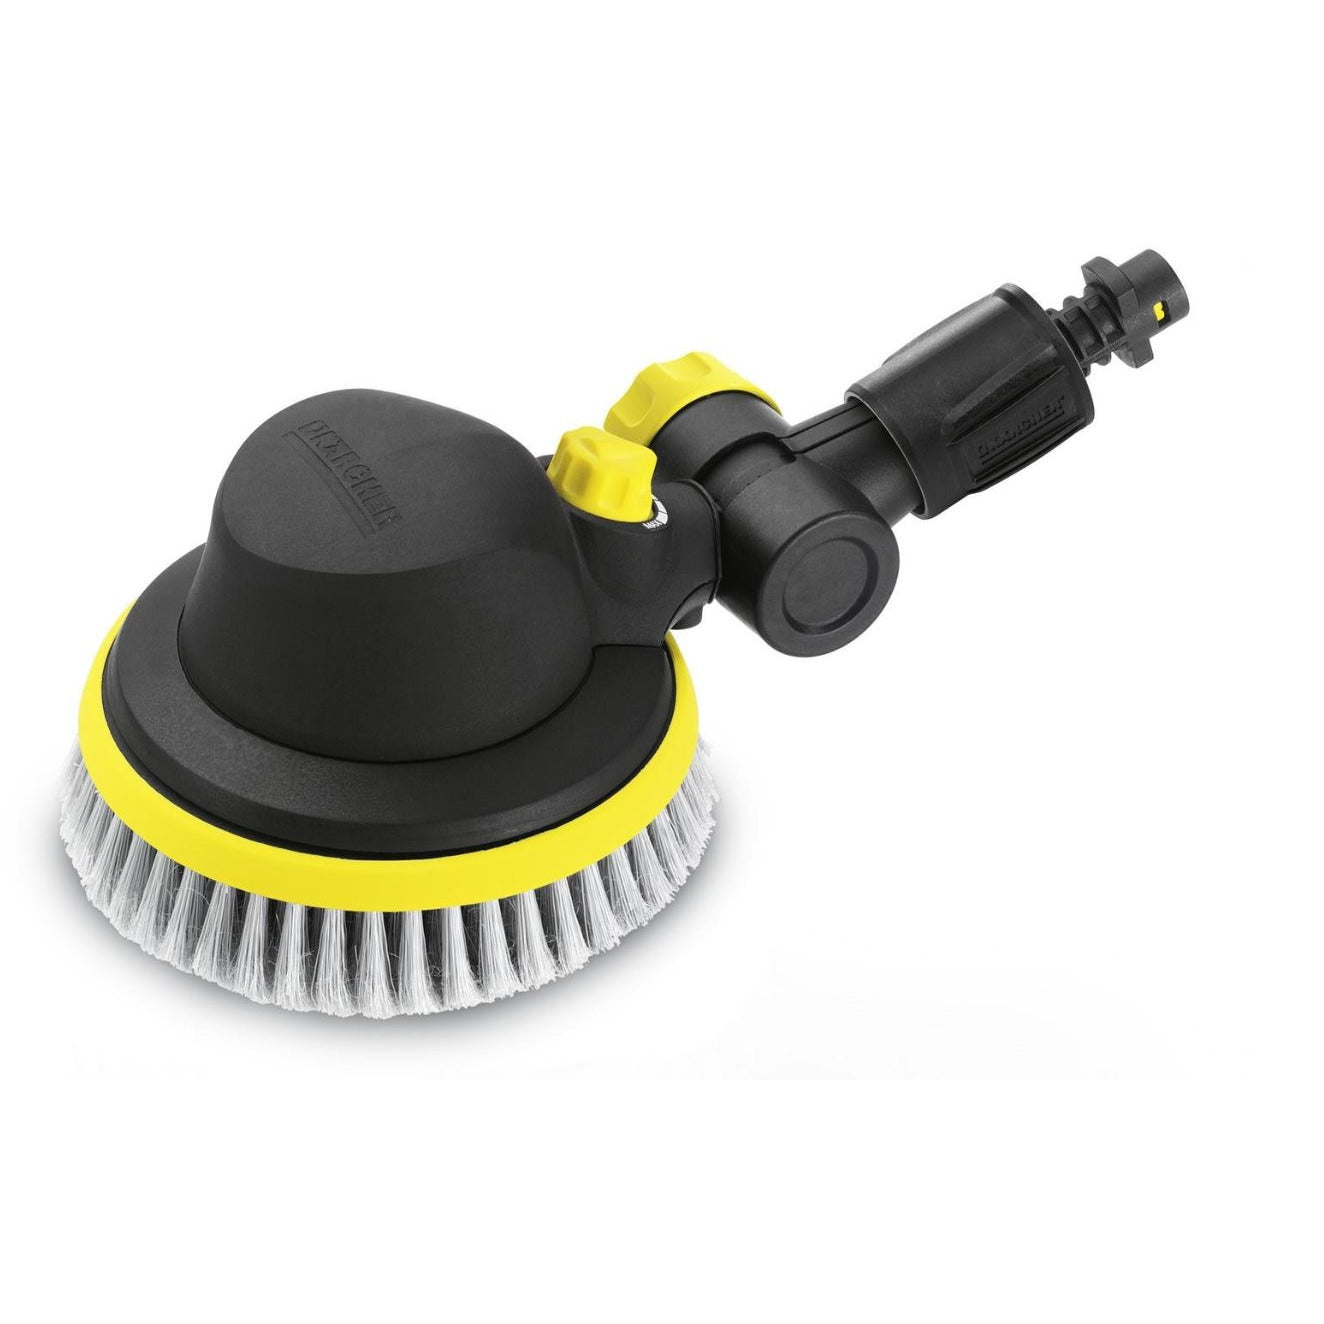 Karcher Rotatory Brush (WB 100)